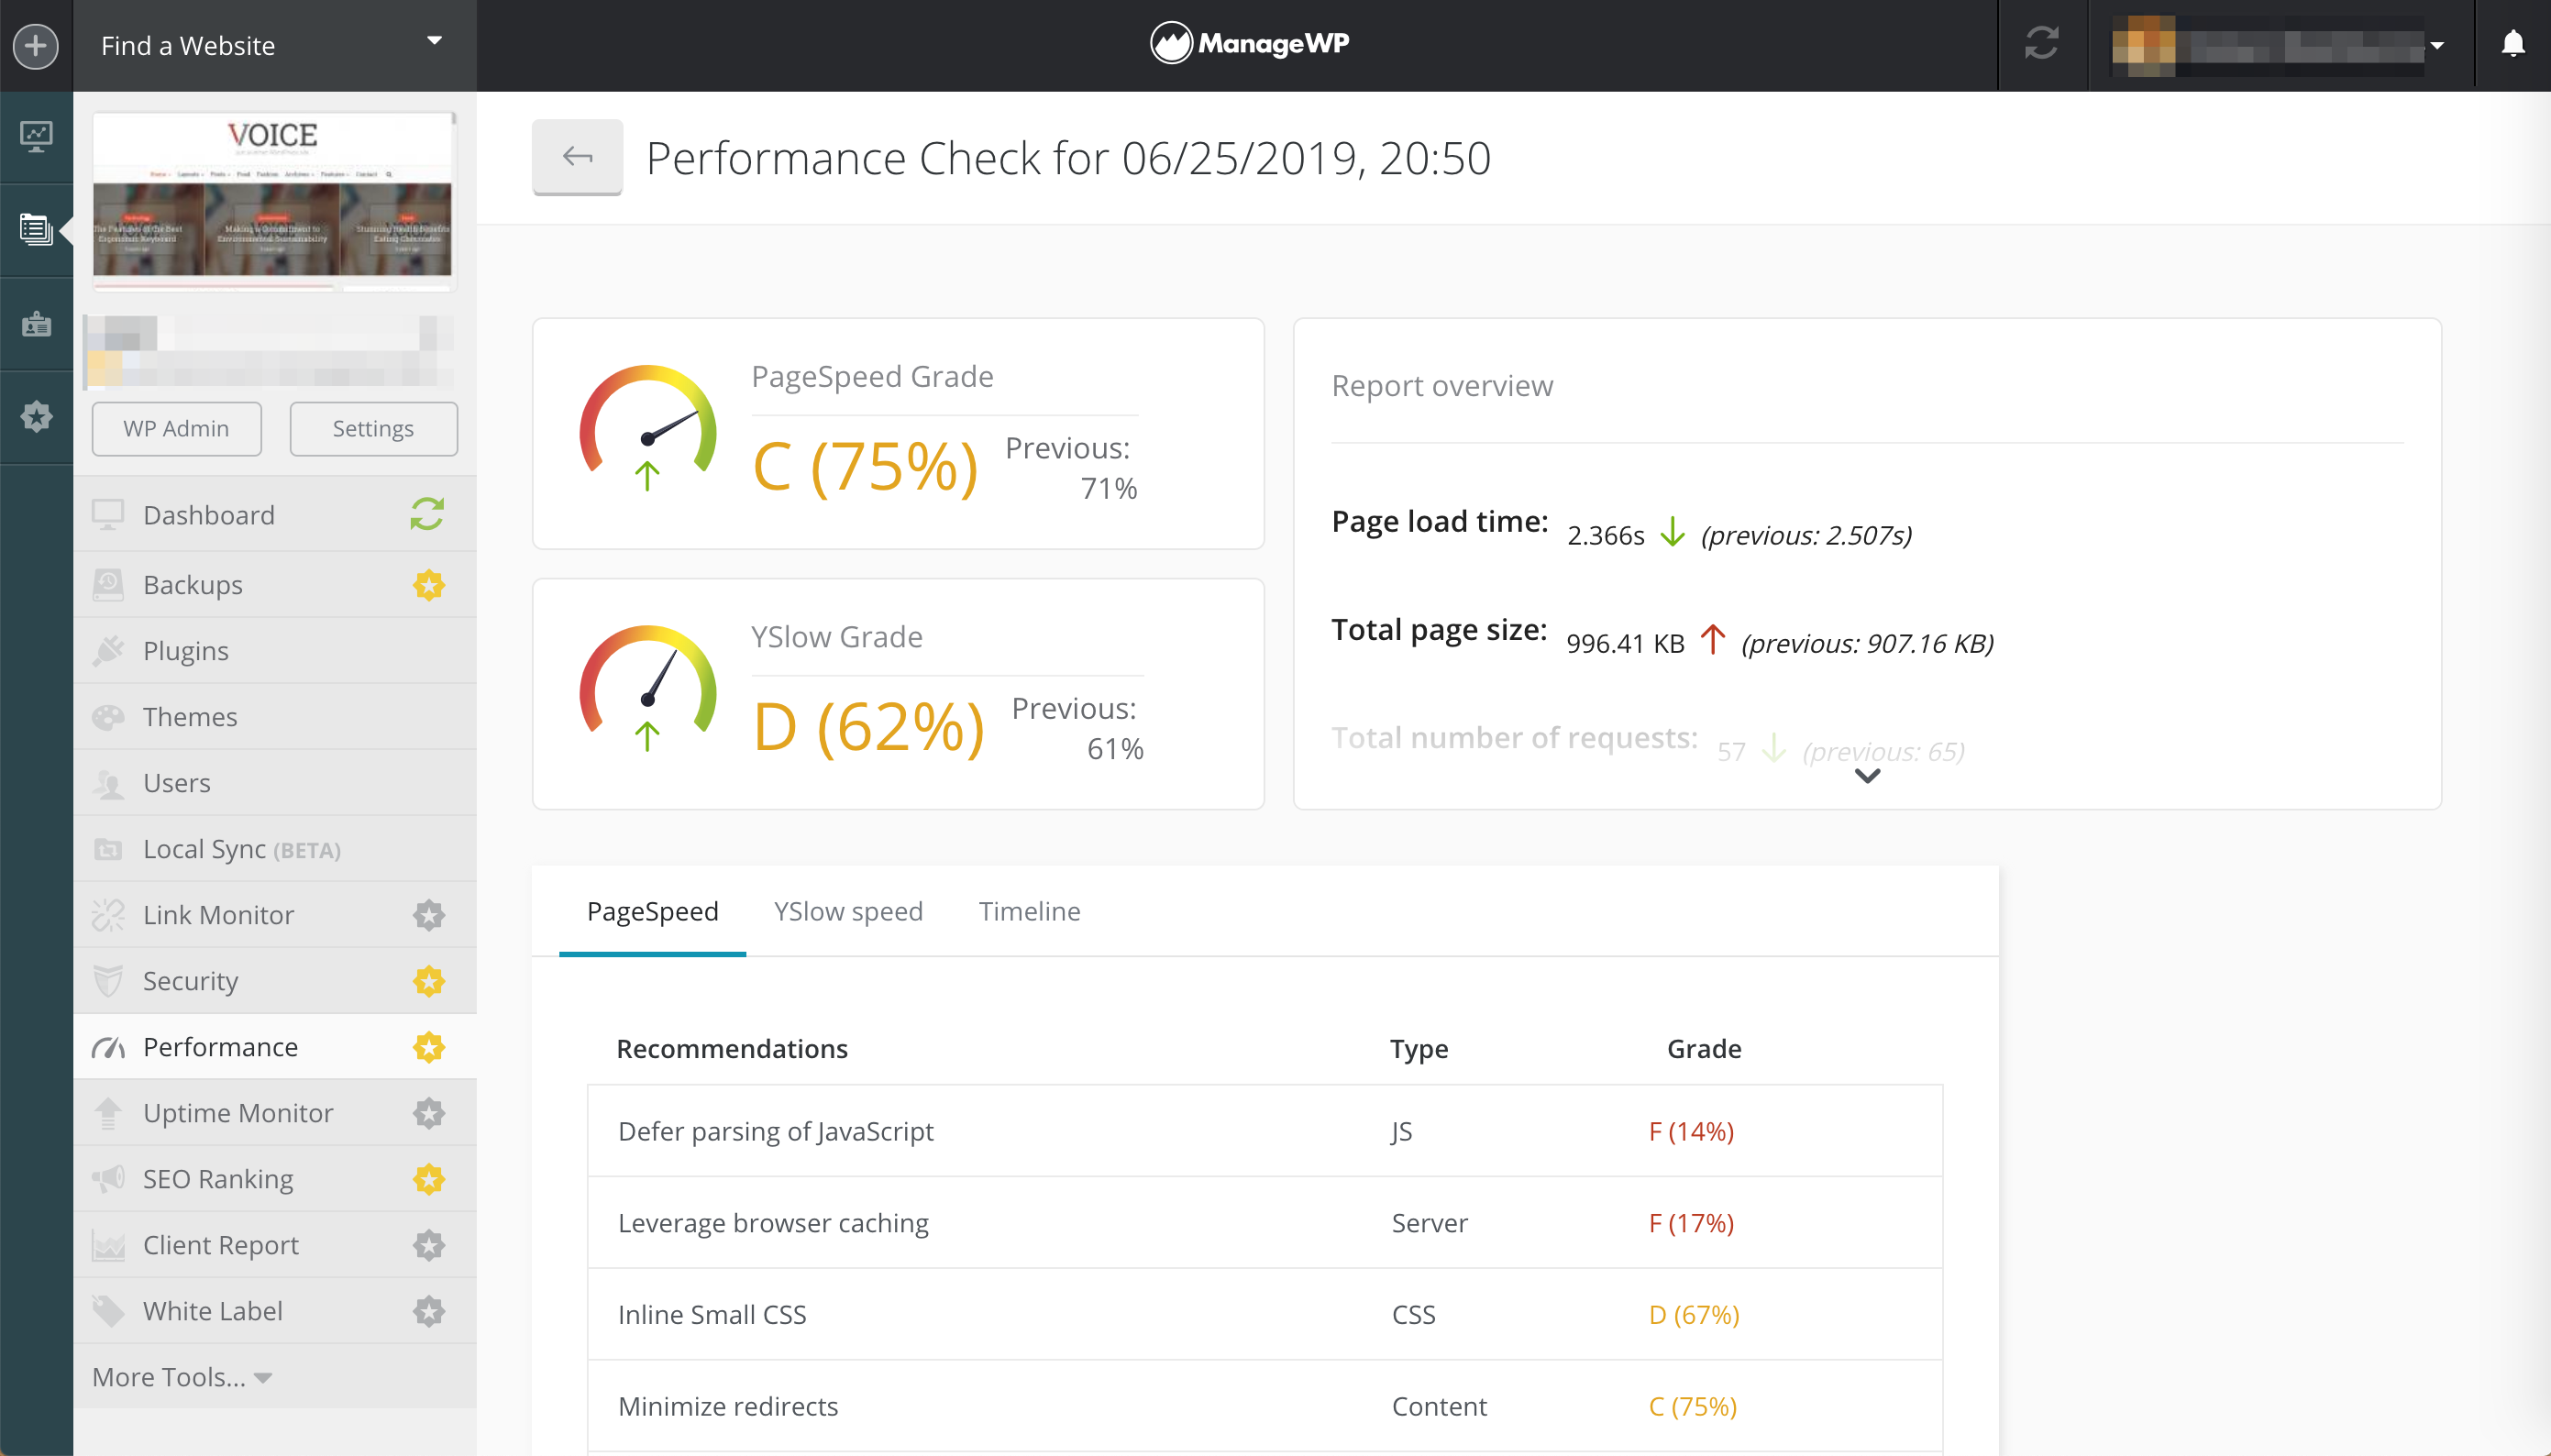 The results of a ManageWP performance check.